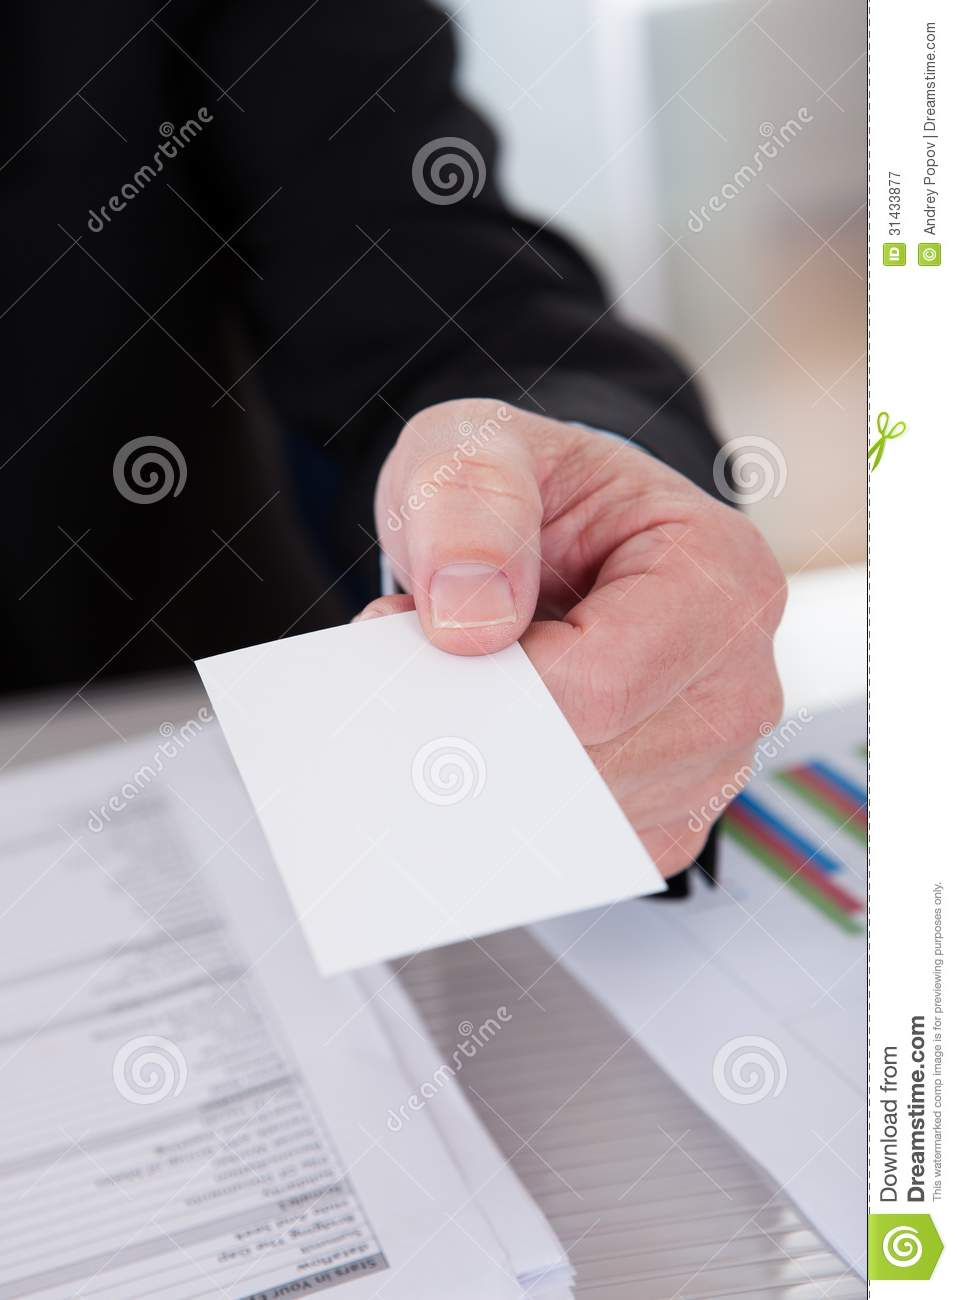 Senior Business Man Offering Visiting Card Stock Image - Image of ...